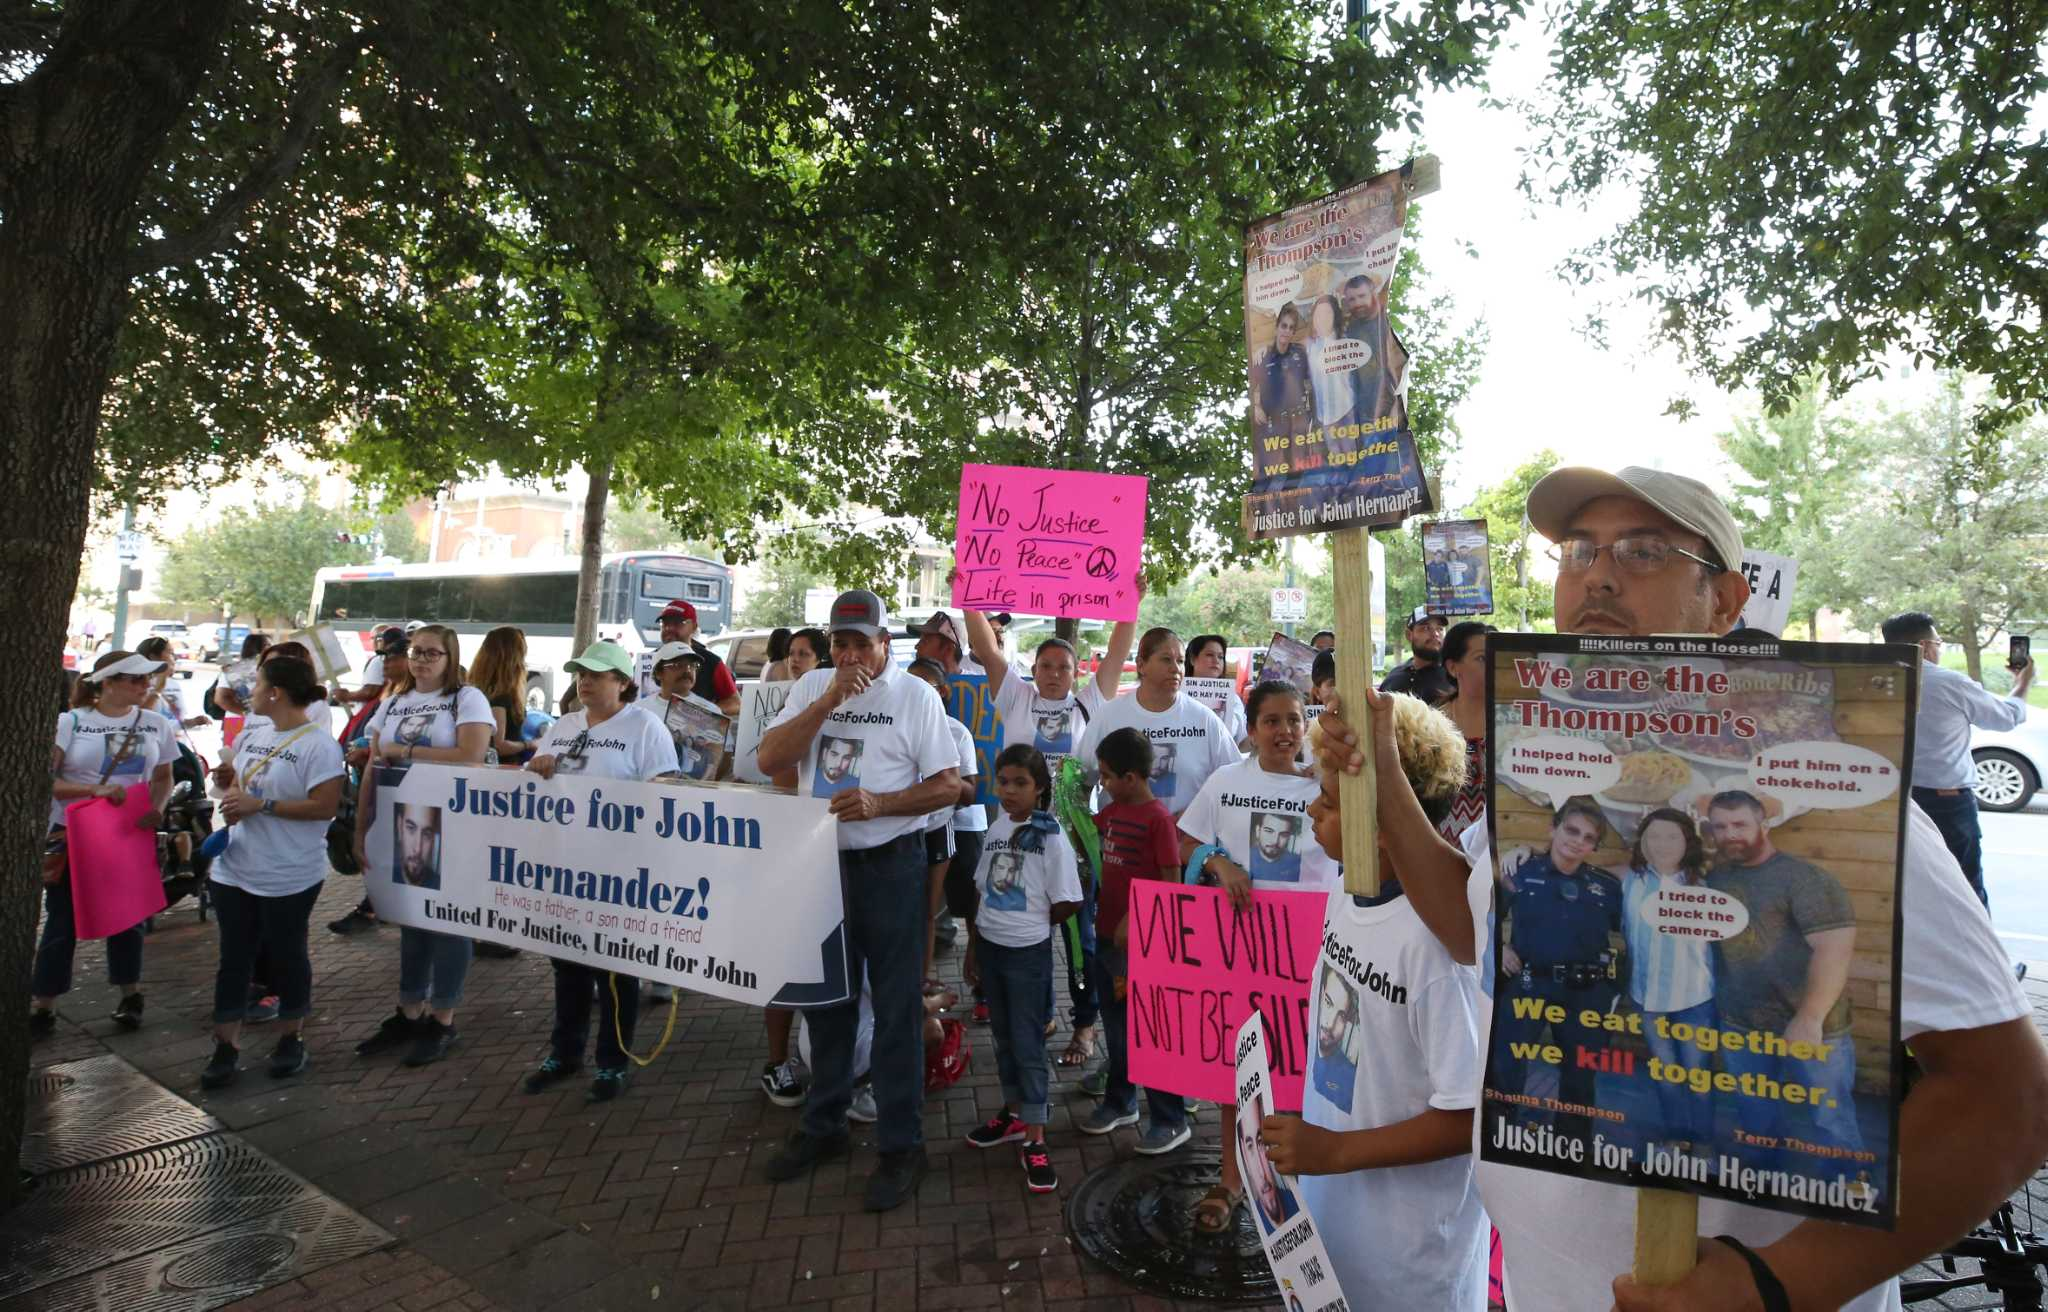 John hernandez state farm agent - Courthouse Protesters Greet Deputy Husband Accused In Choking Death At Denny S Houston Chronicle